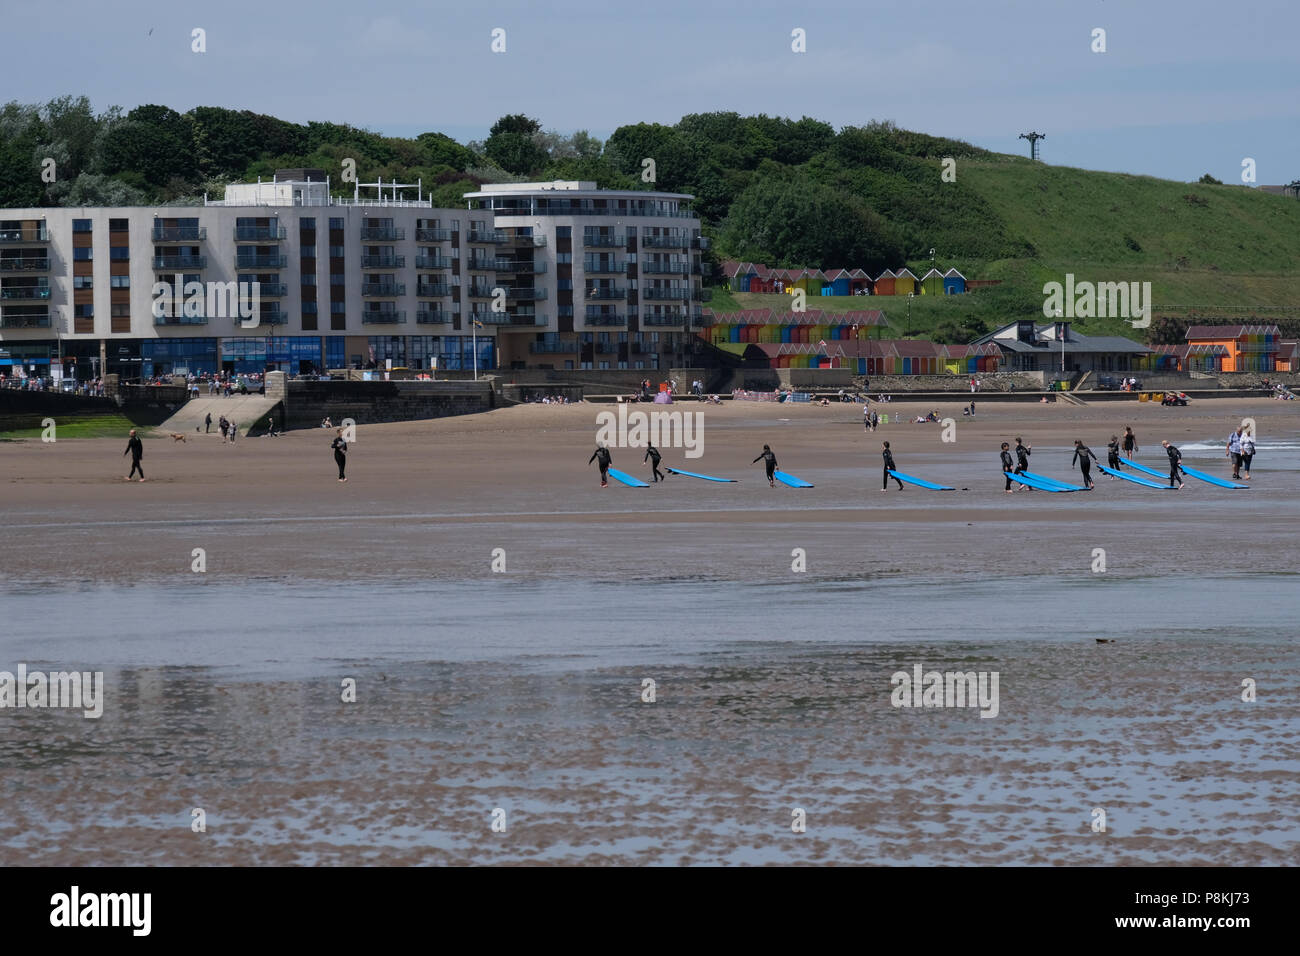 Surf boarding lessons for school or group of children on North Bay beach, Scarborough - Stock Image